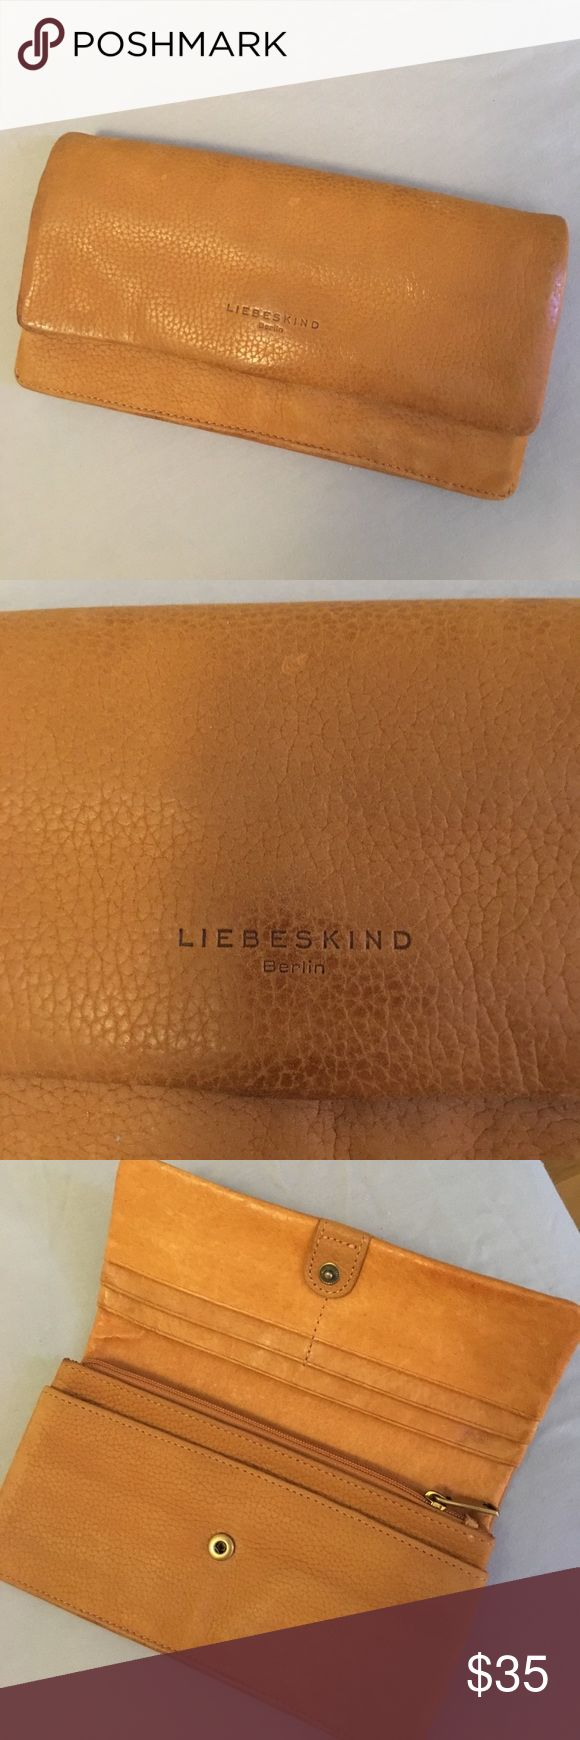 """Liebskind Berlin Leather Wallet This is a Liebskind Berlin buttery tan leather wallet.  Full size and with lots of card holders and both an interior and exterior coin holder.  Approximately 7.5"""" long and 4"""" wide.  Slight wear on the corner of the front flap, but overall in very good used condition.  I used this for traveling-matches the Pour La Victoire bag I also have in my closet in case you want to bundle. ;). Liebeskind Bags Wallets"""